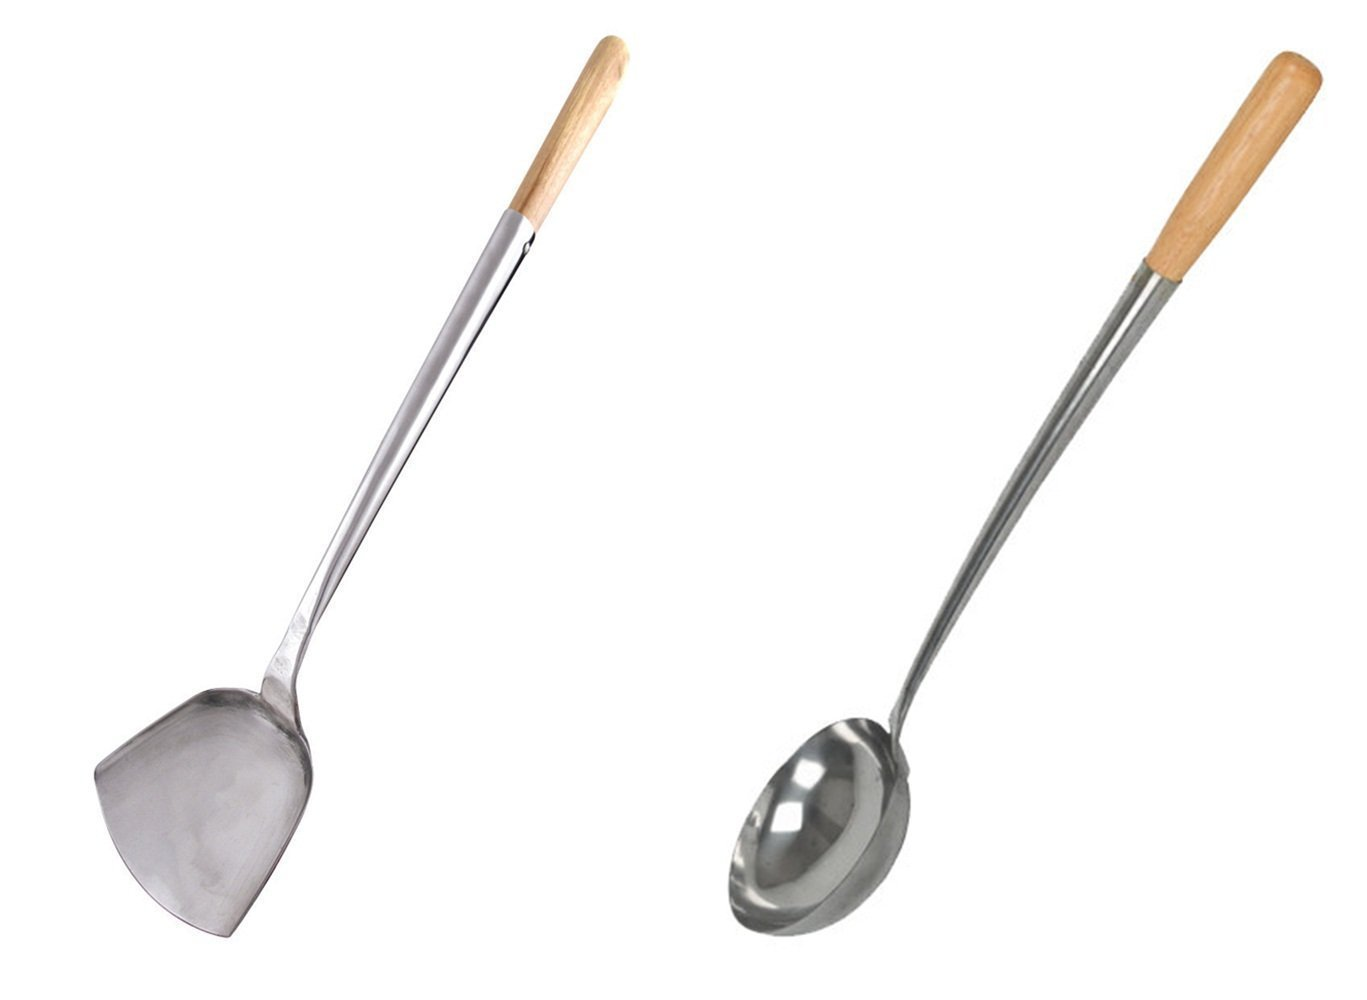 Home Use Stainless Hand-Tooled Chuan & Hoak (Spatula & Ladle) Set (S, 17.25